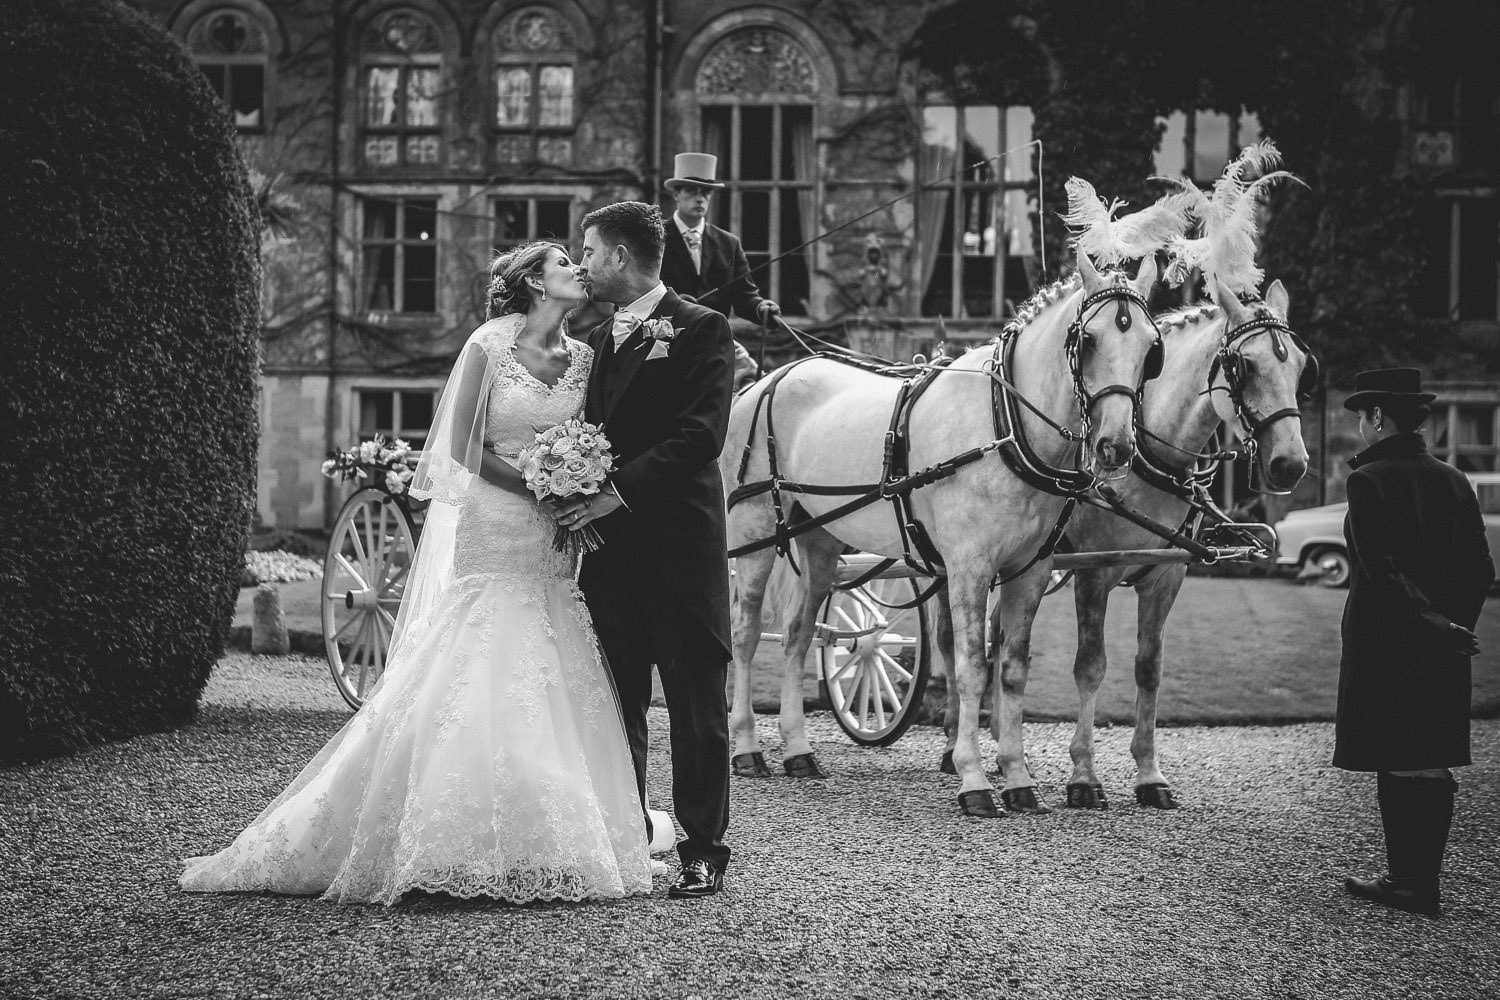 Cheshire wedding photographer: Black and white photo of bride and groom kissing in front of Soughton Hall with horses